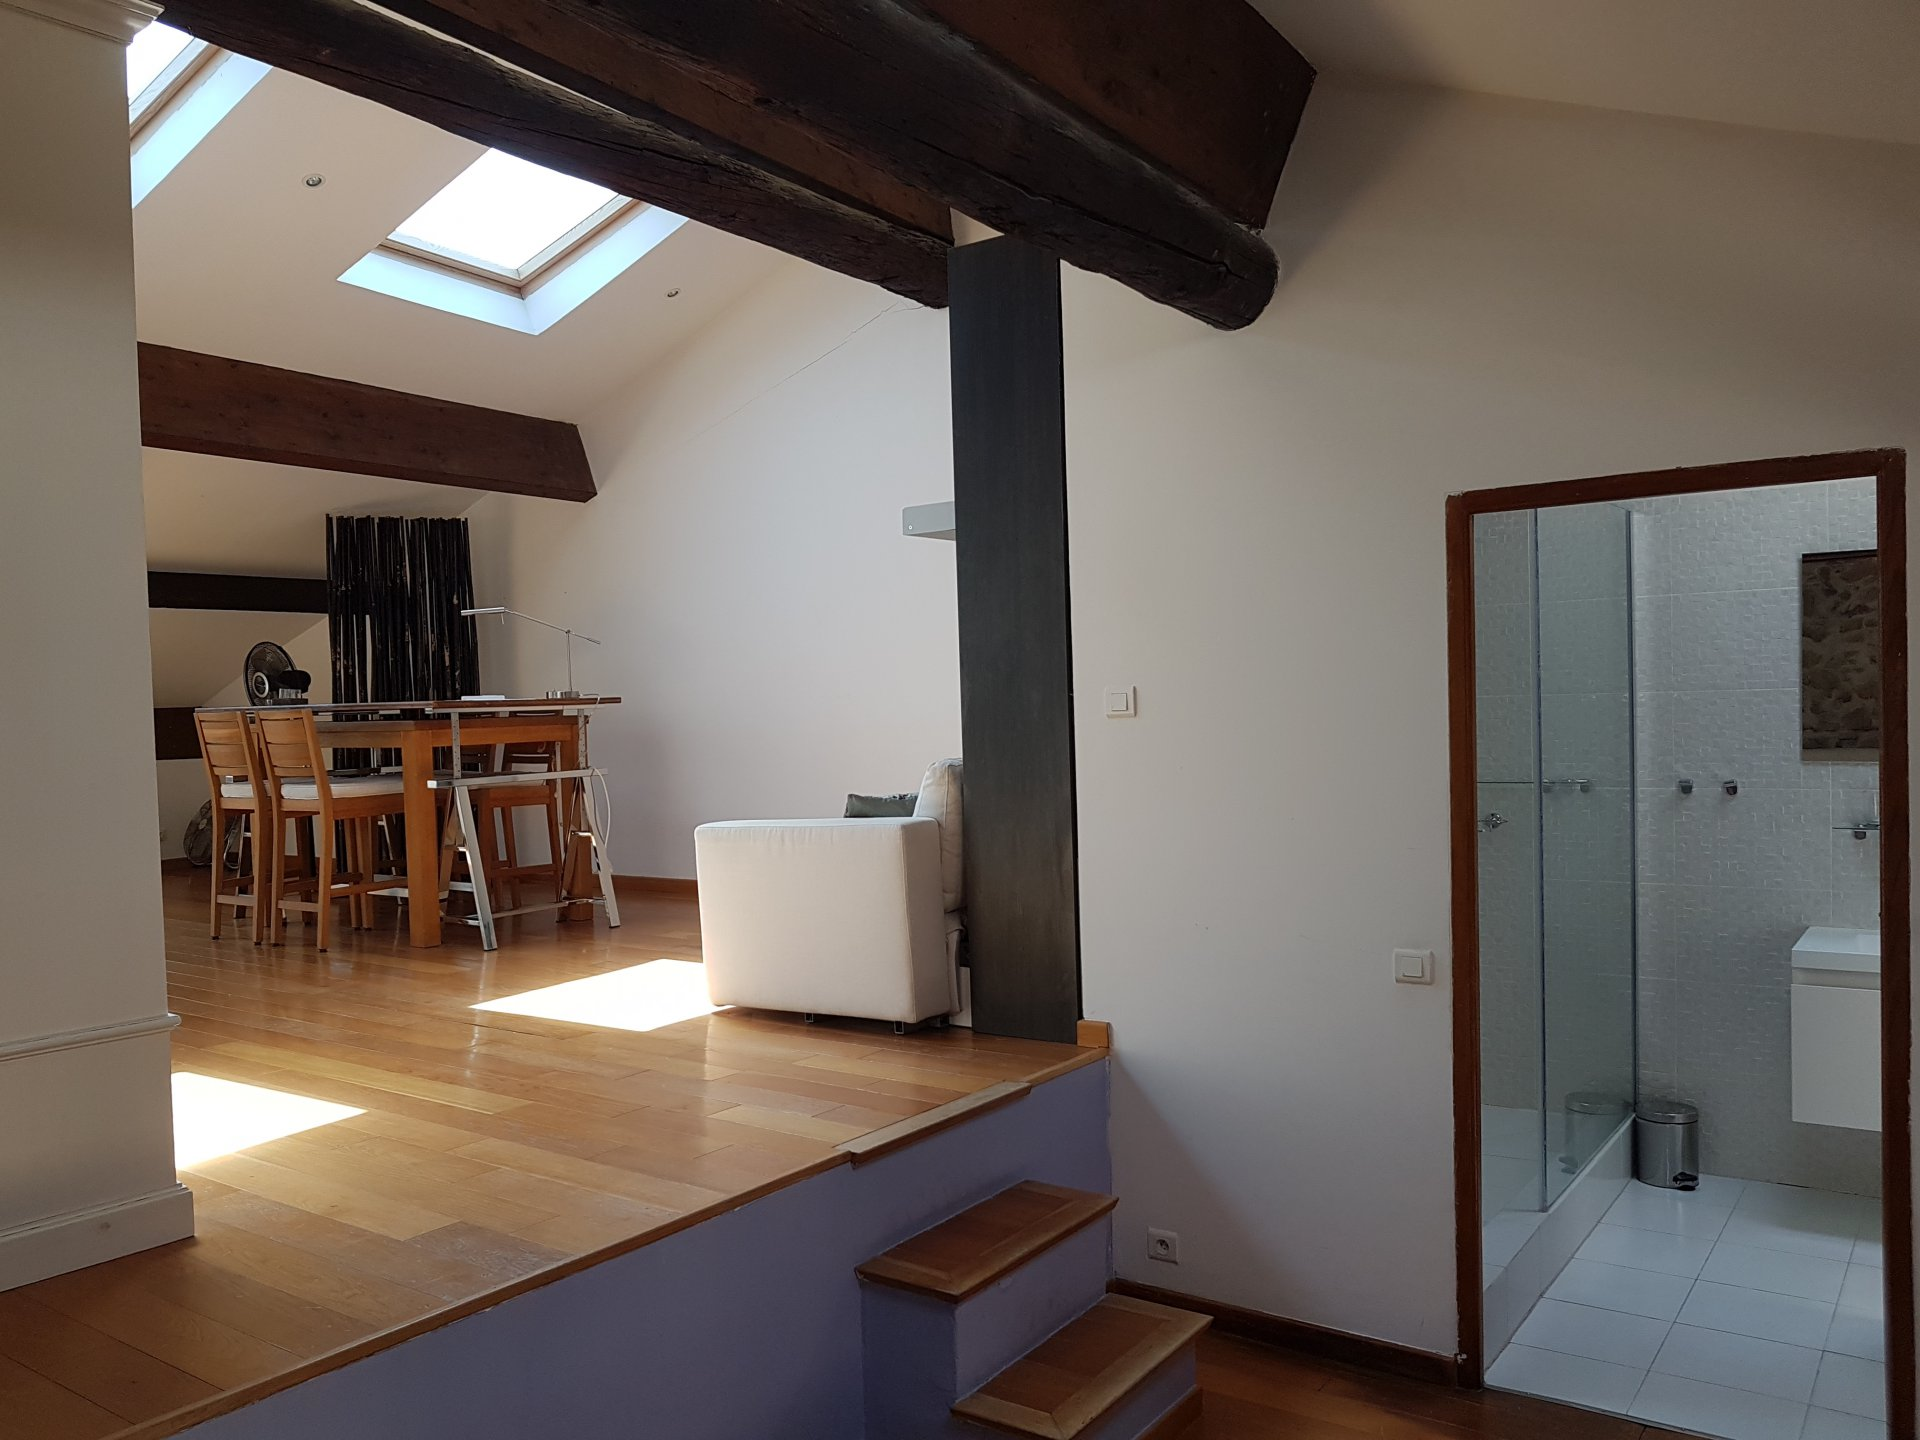 Skylight, kitchen bar